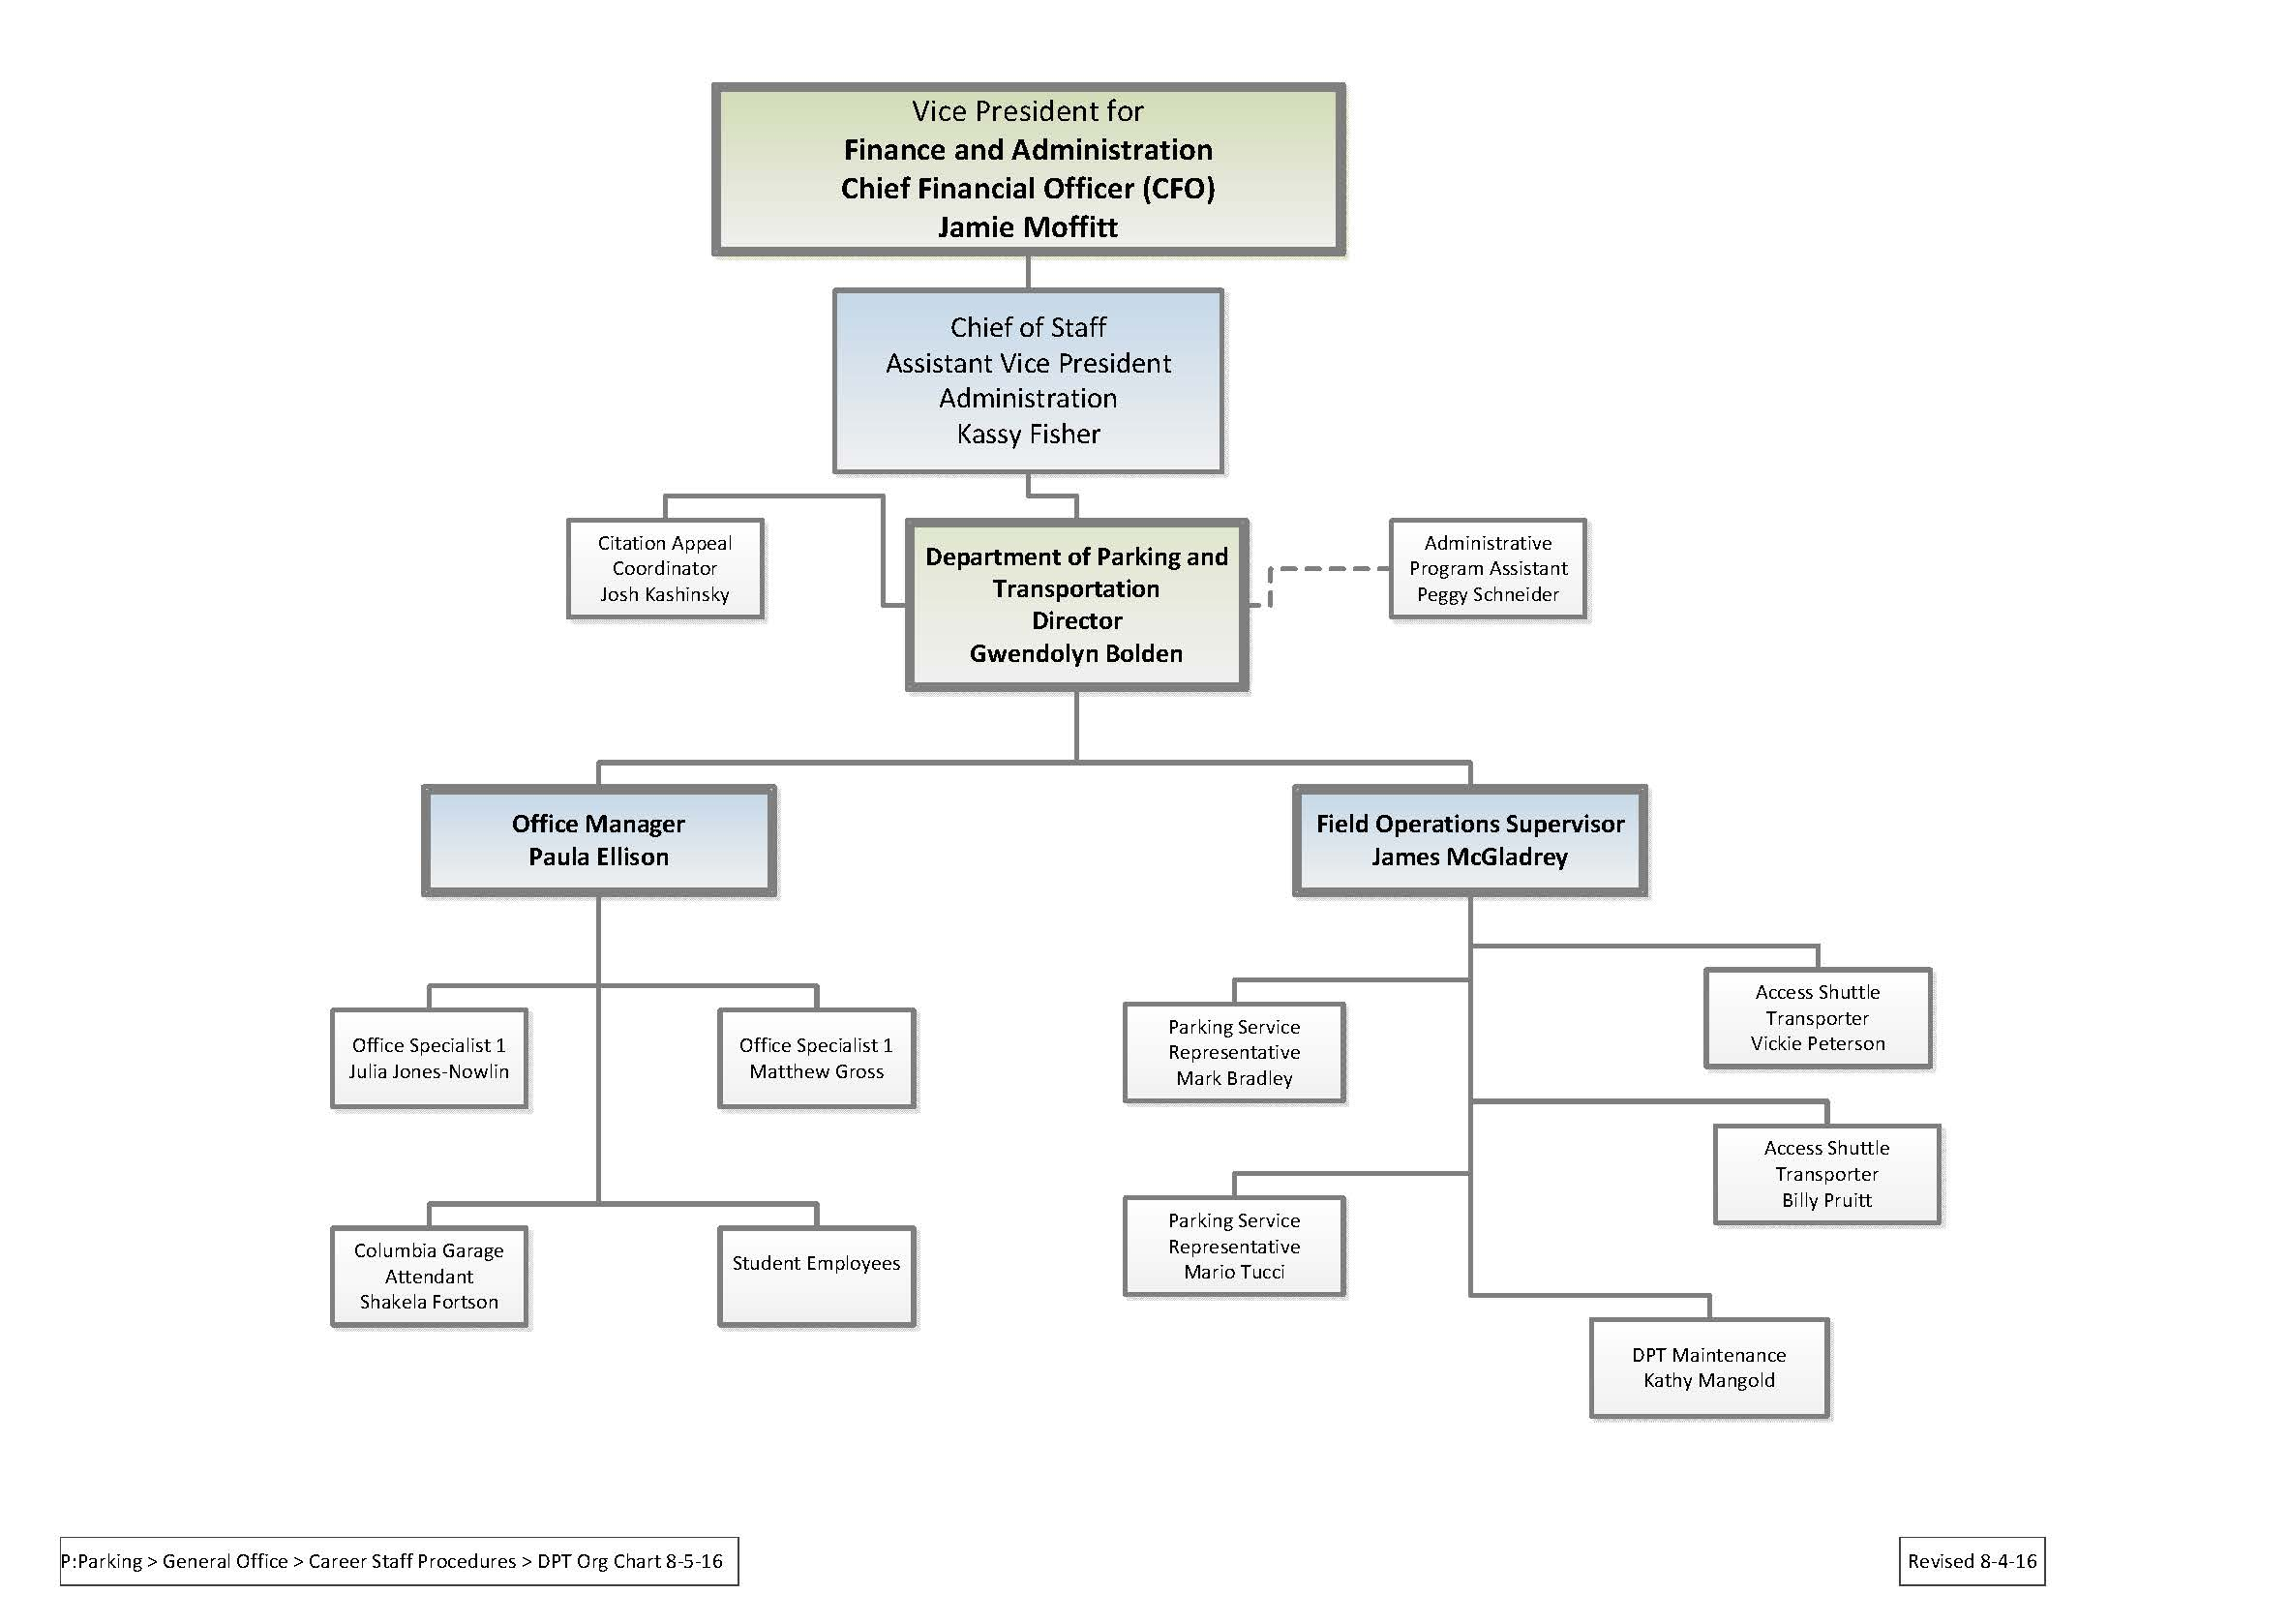 Organization Chart - Image | Department of Parking and Transportation